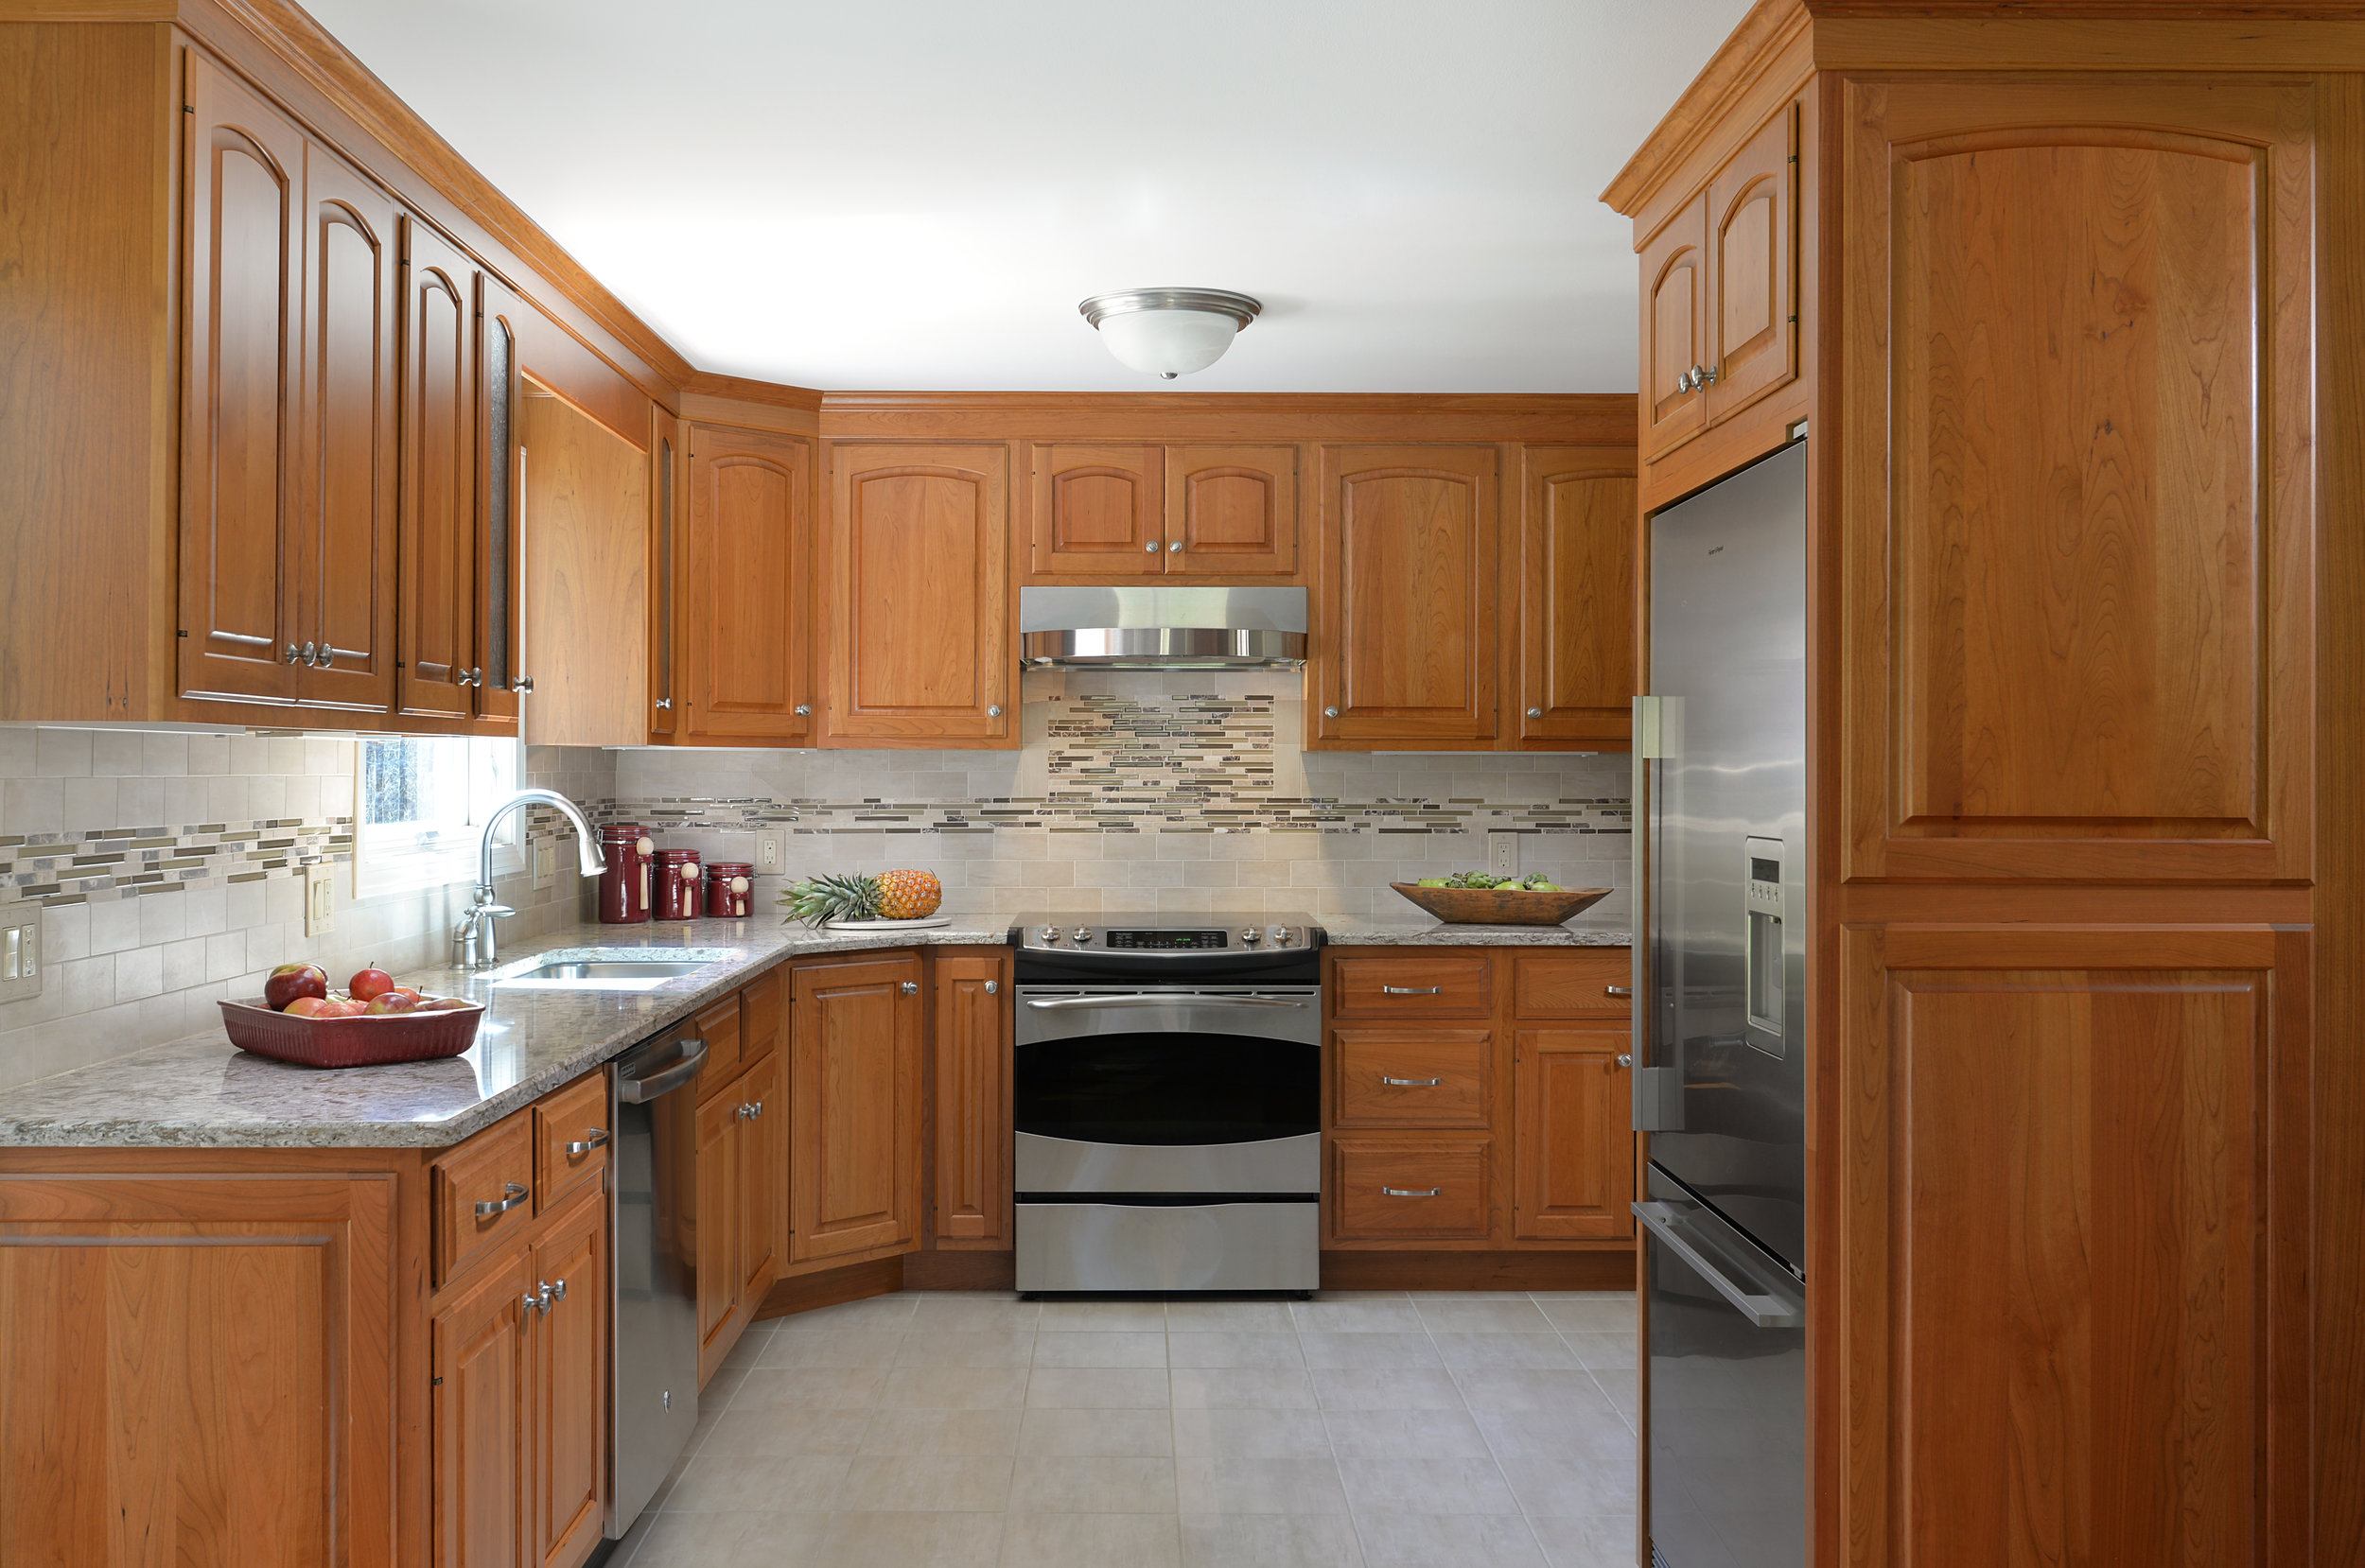 """Designed by Solana James CKD / Candlelight Cabinetry, 3/8"""" Lipped Classic Arch Door Style, Cherry Wood with Honey Glow Stain / Cambria Windemere Quartz Counter Tops"""